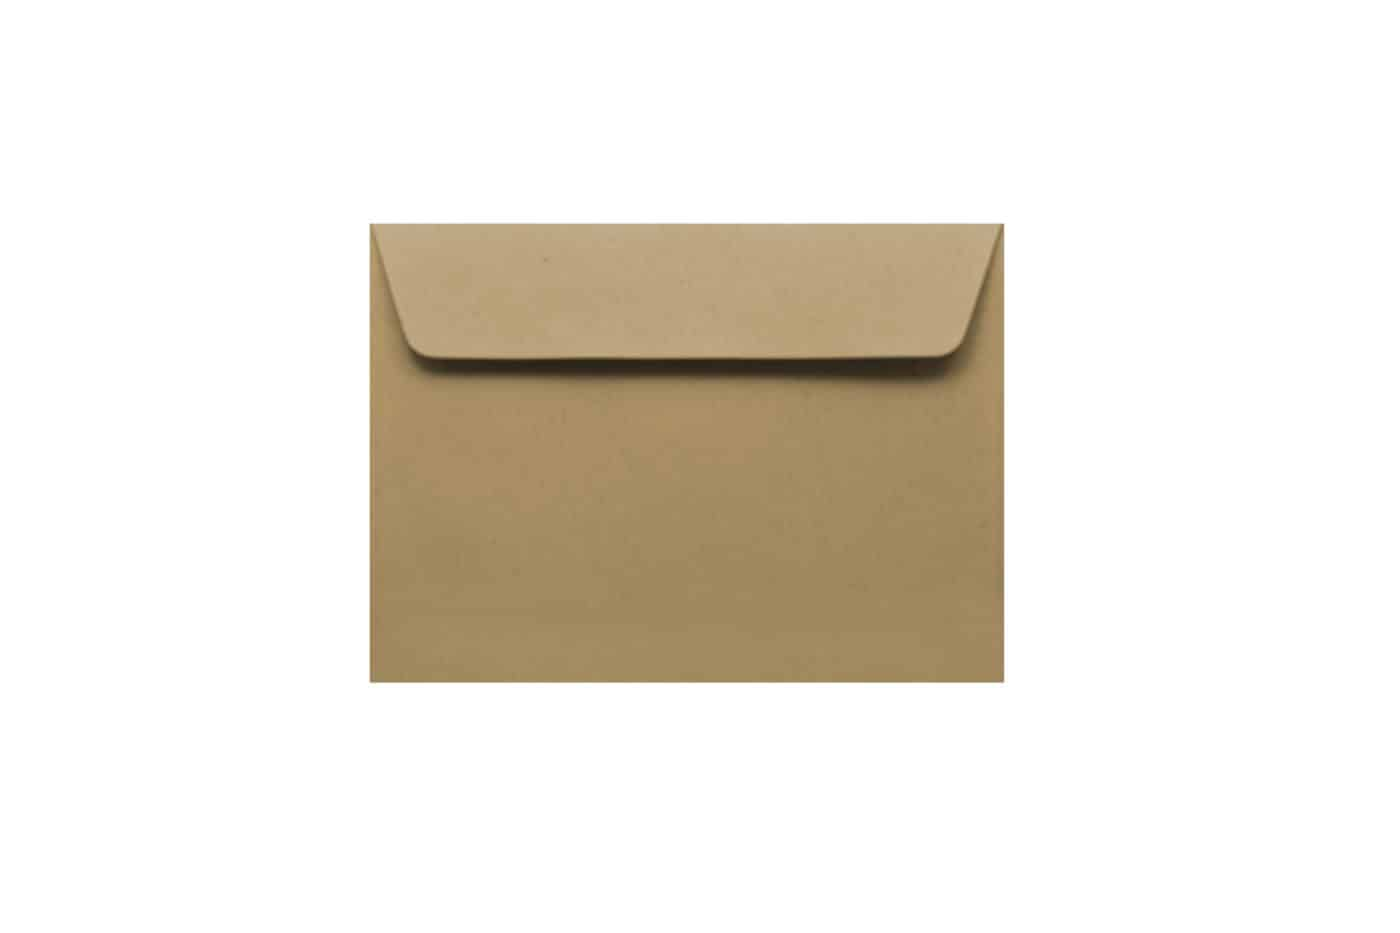 11cm x 8.5cm Kraft paper envelopes